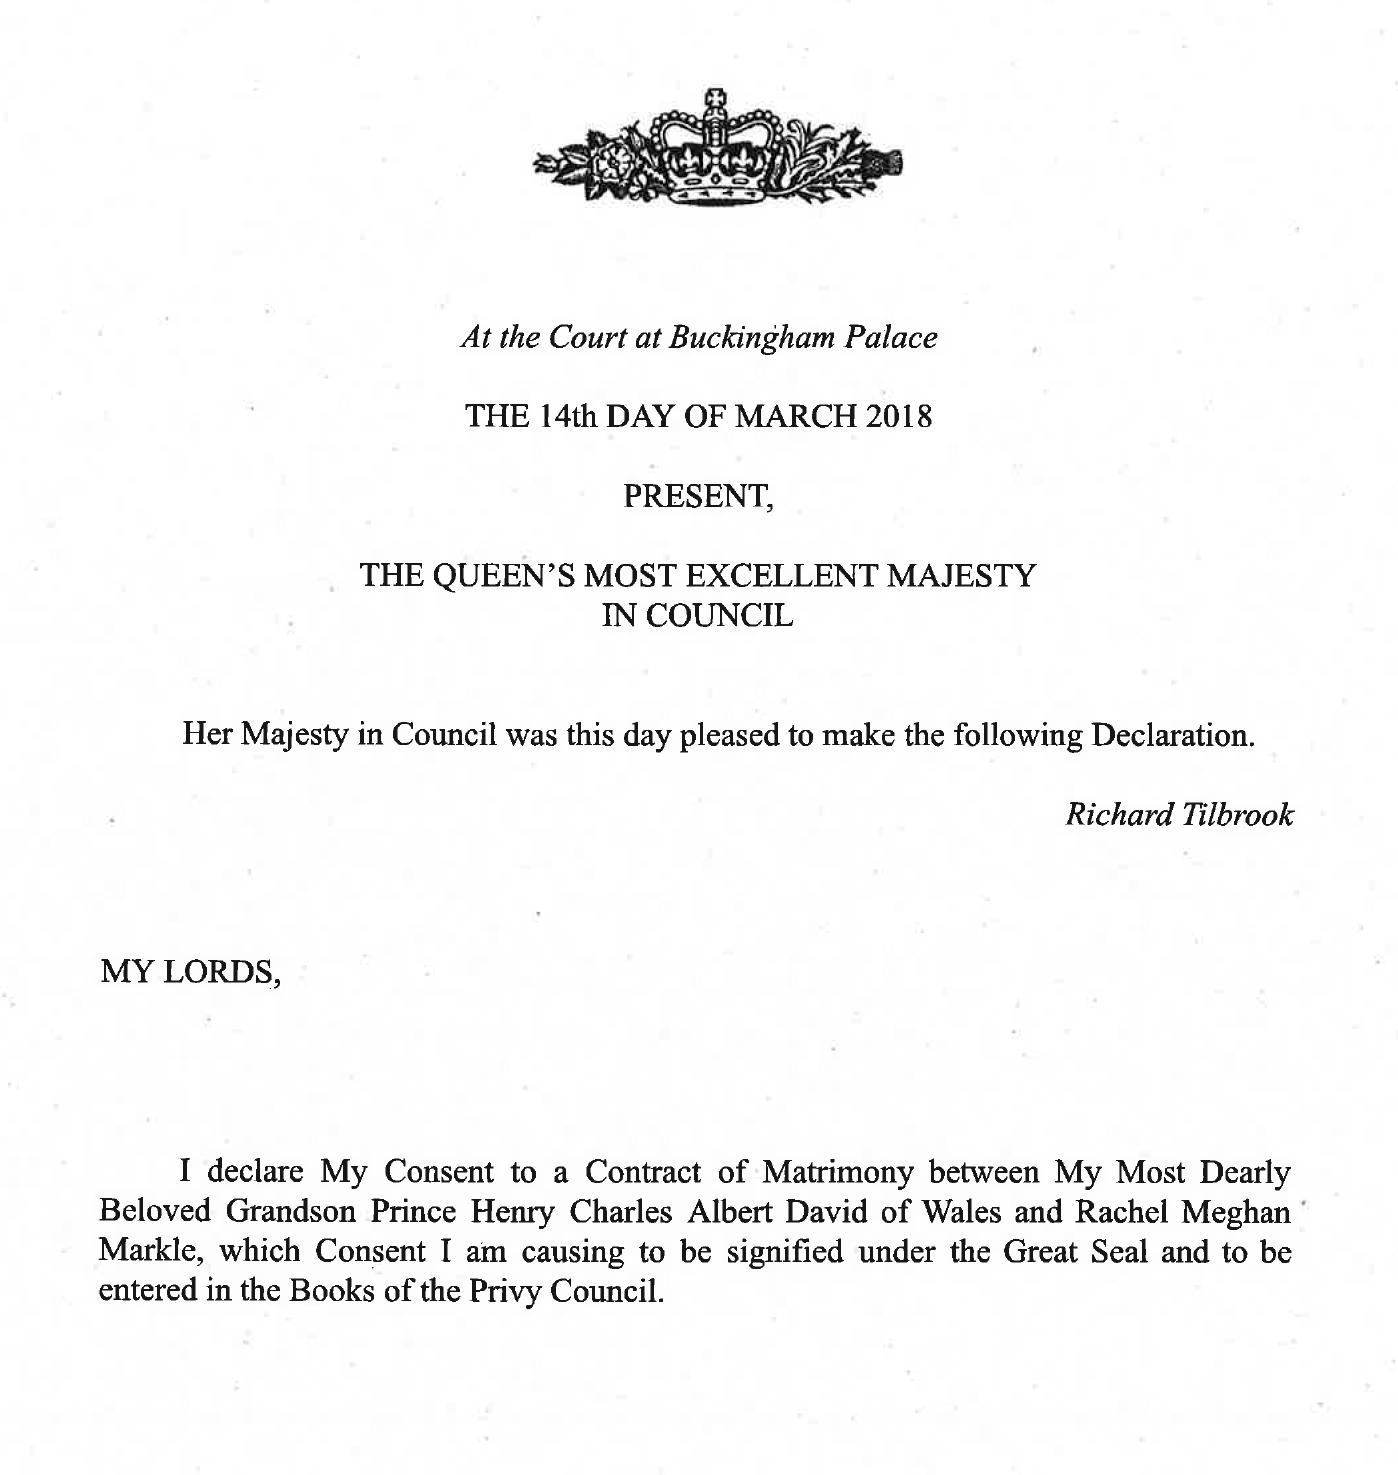 The declaration made by the Queen at Wednesday's Privy Council meeting at which she gave her formal consent to the marriage of Prince Harry and Meghan Markle